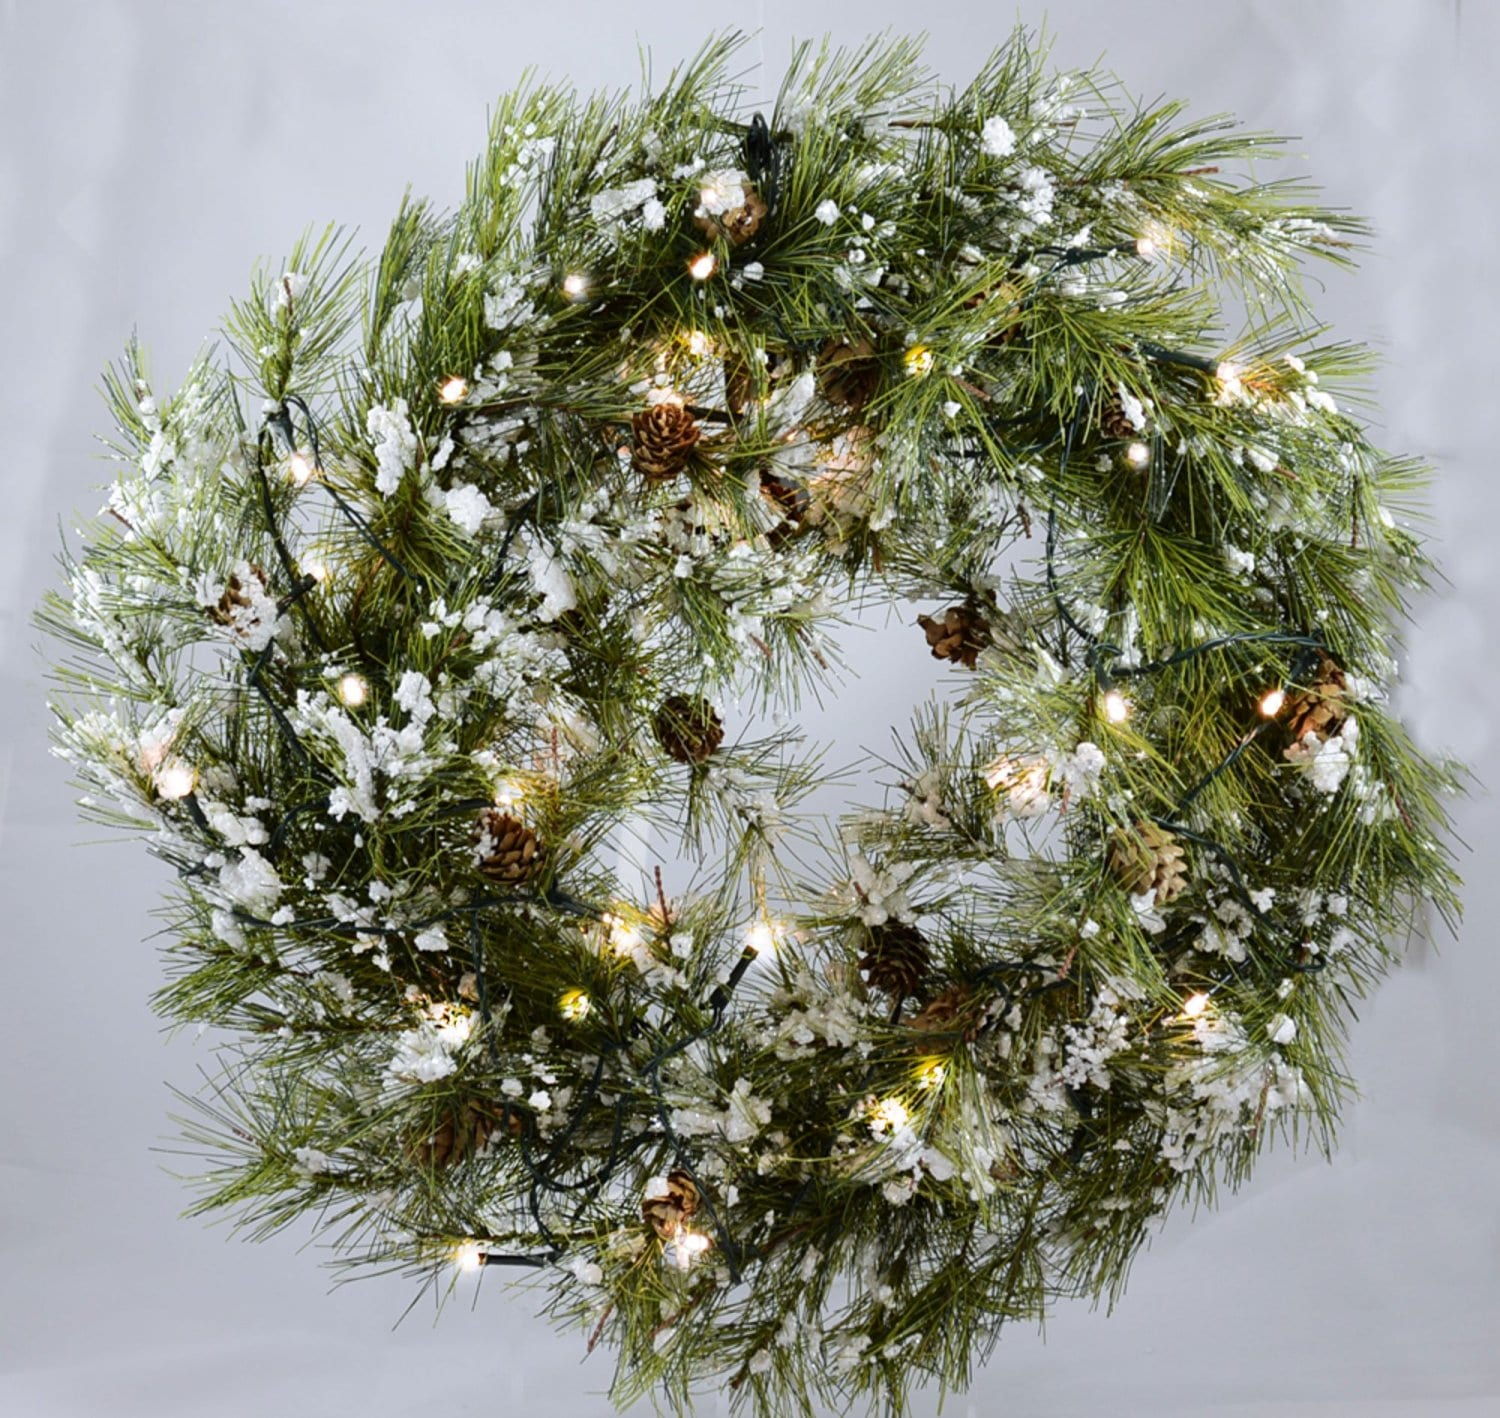 Best Christmas Wreaths 2016: Battery Operated With Snow